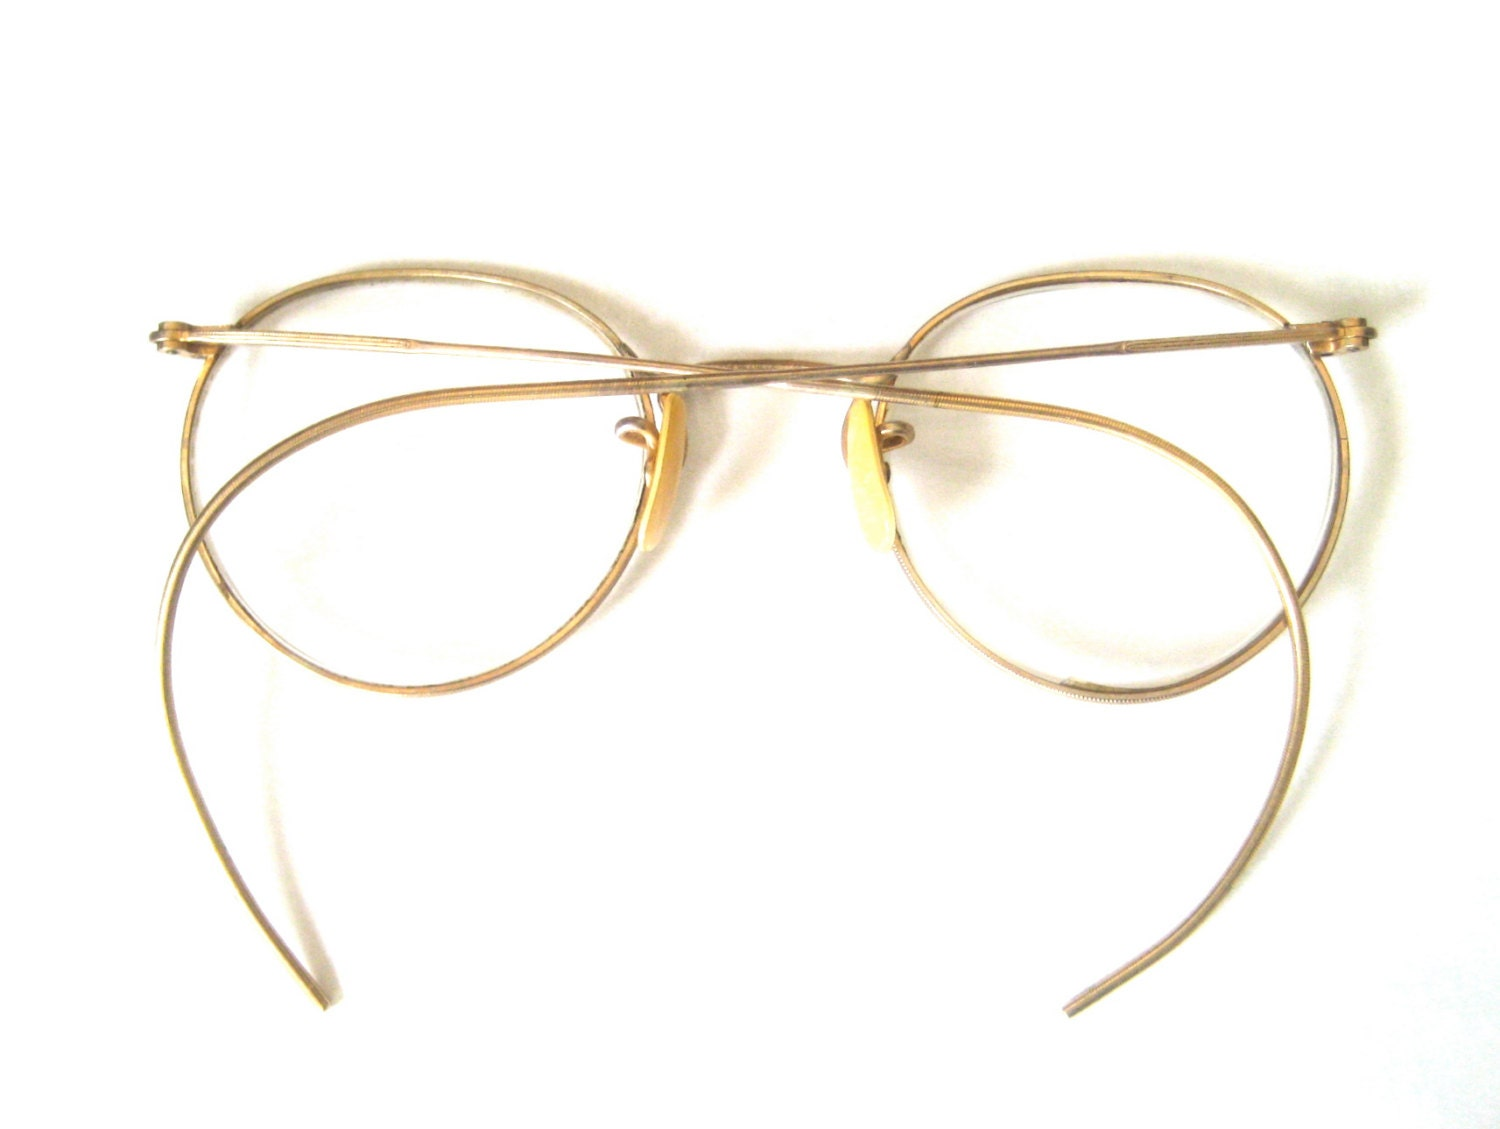 Marshwood P3 Gold Filled Wire Rim Eyeglasses by BetterWythAge